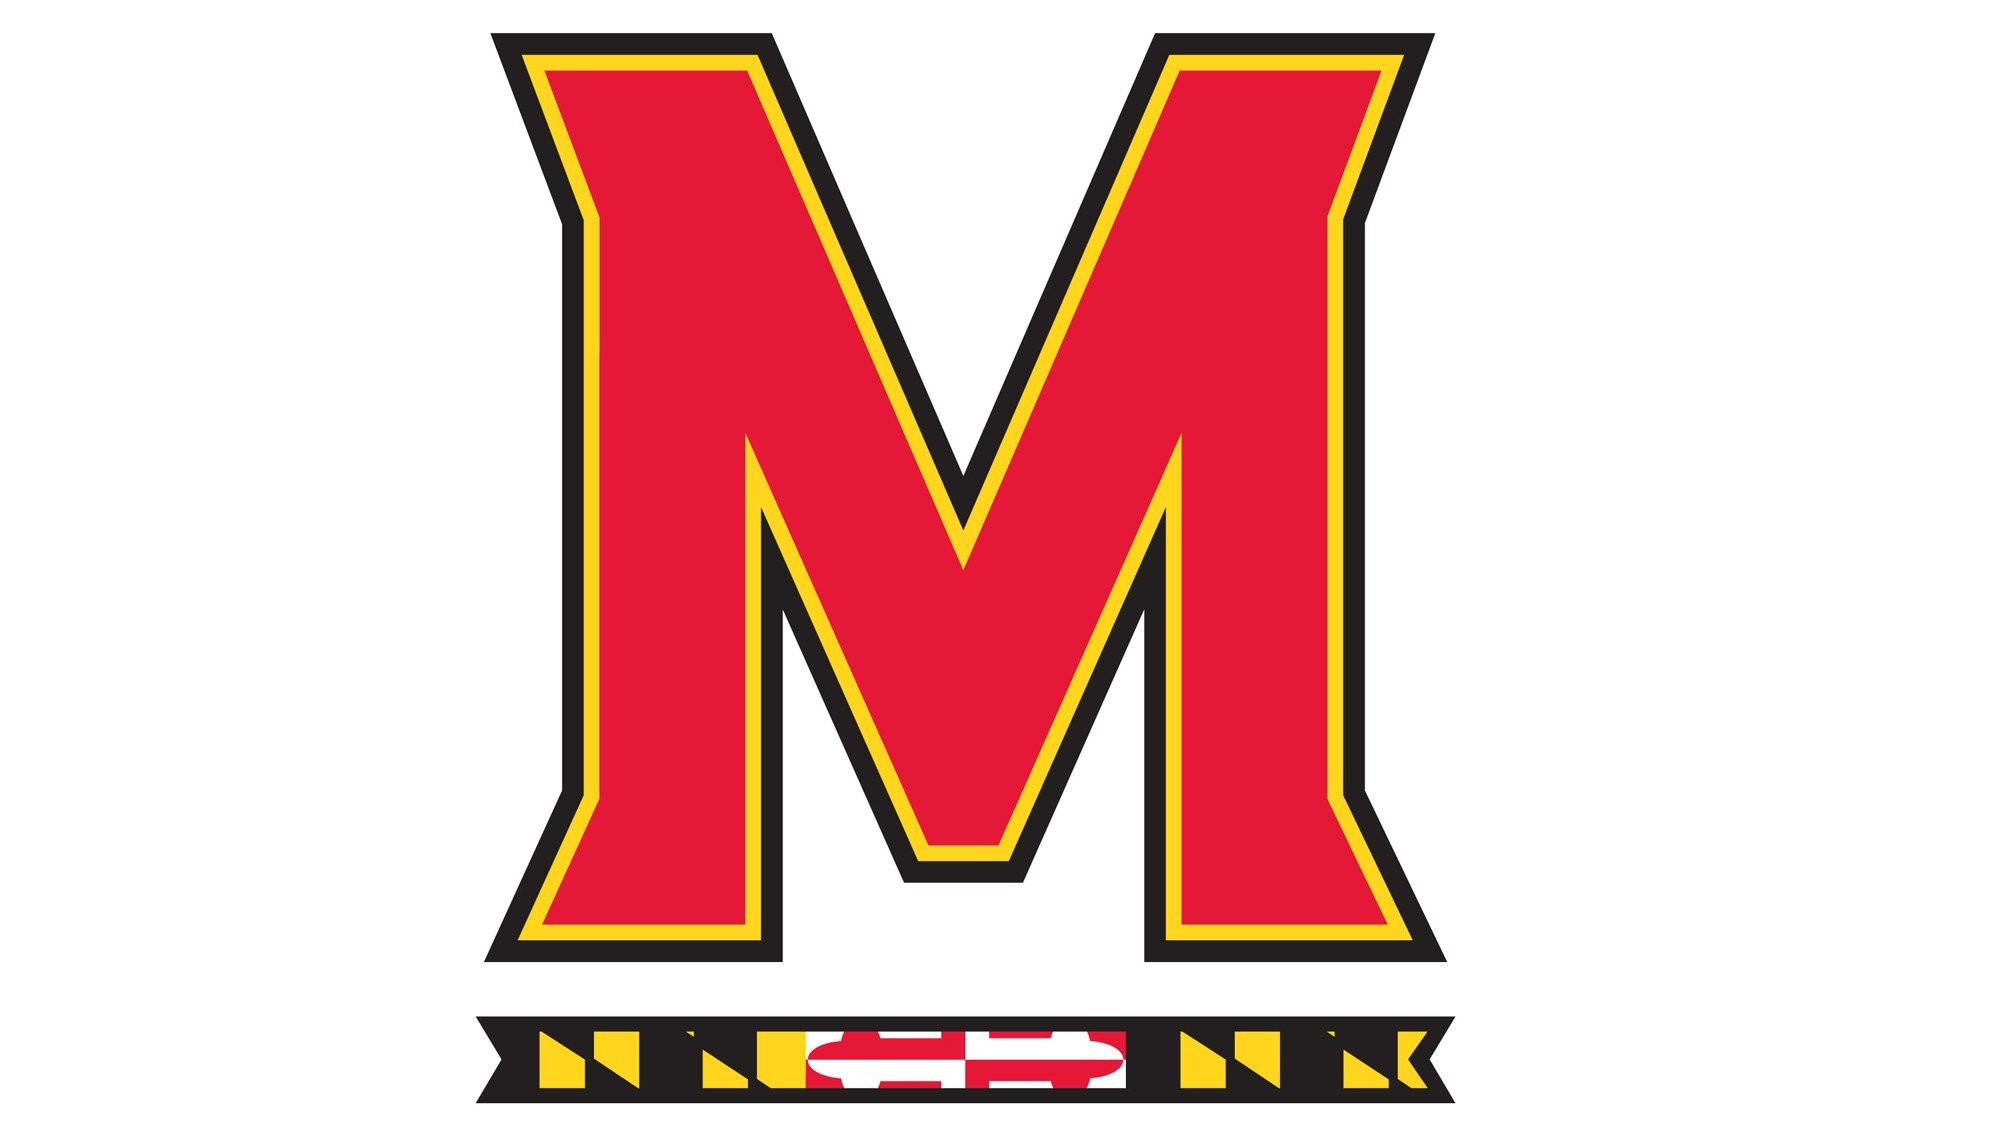 University of Maryland Wallpaper 57 images 2000x1125